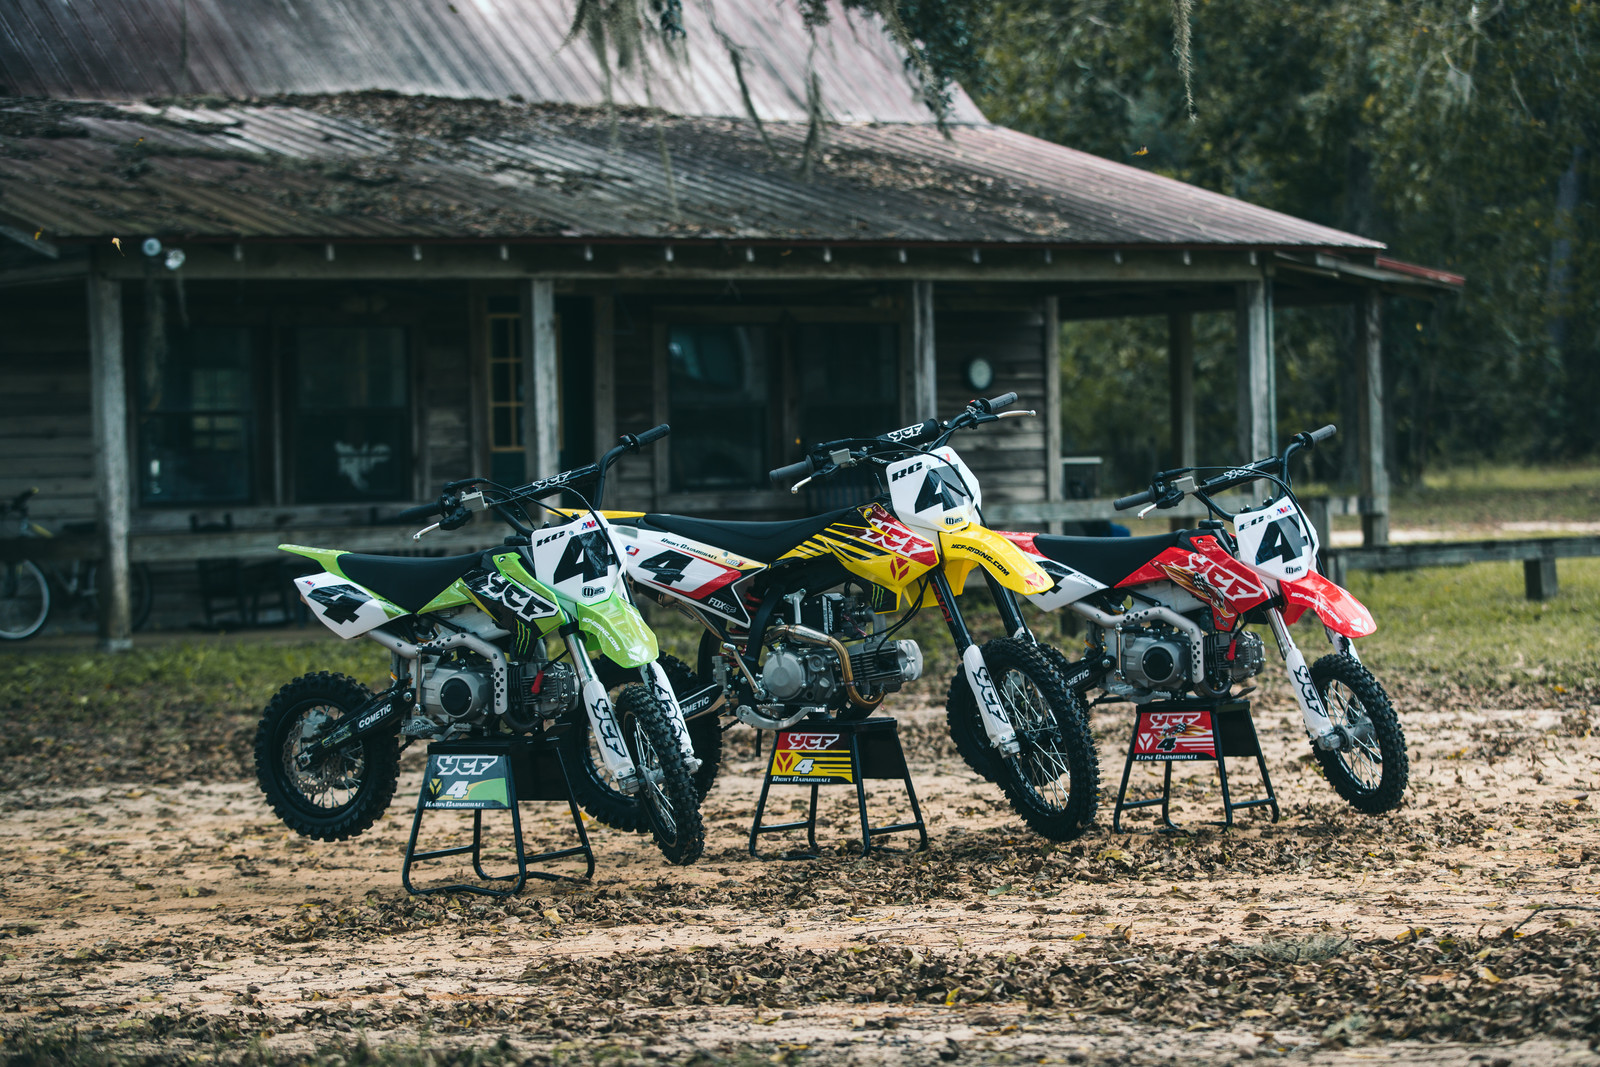 YCF Bikes: Ricky Carmichael and Son Ride Together!